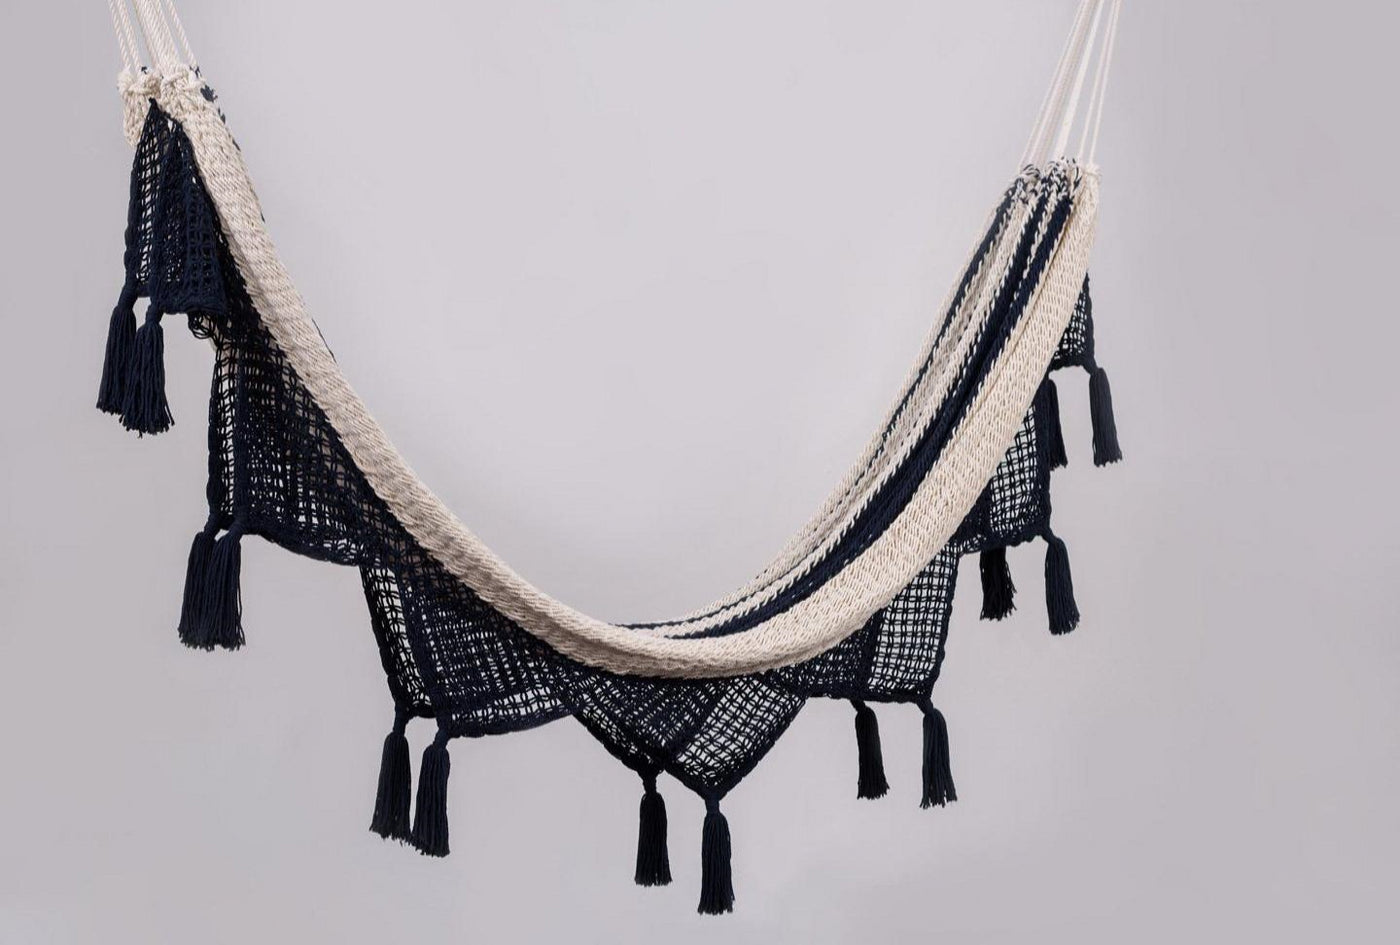 Cotton Navy Blue Hammock With Tassels Handmade High Quality